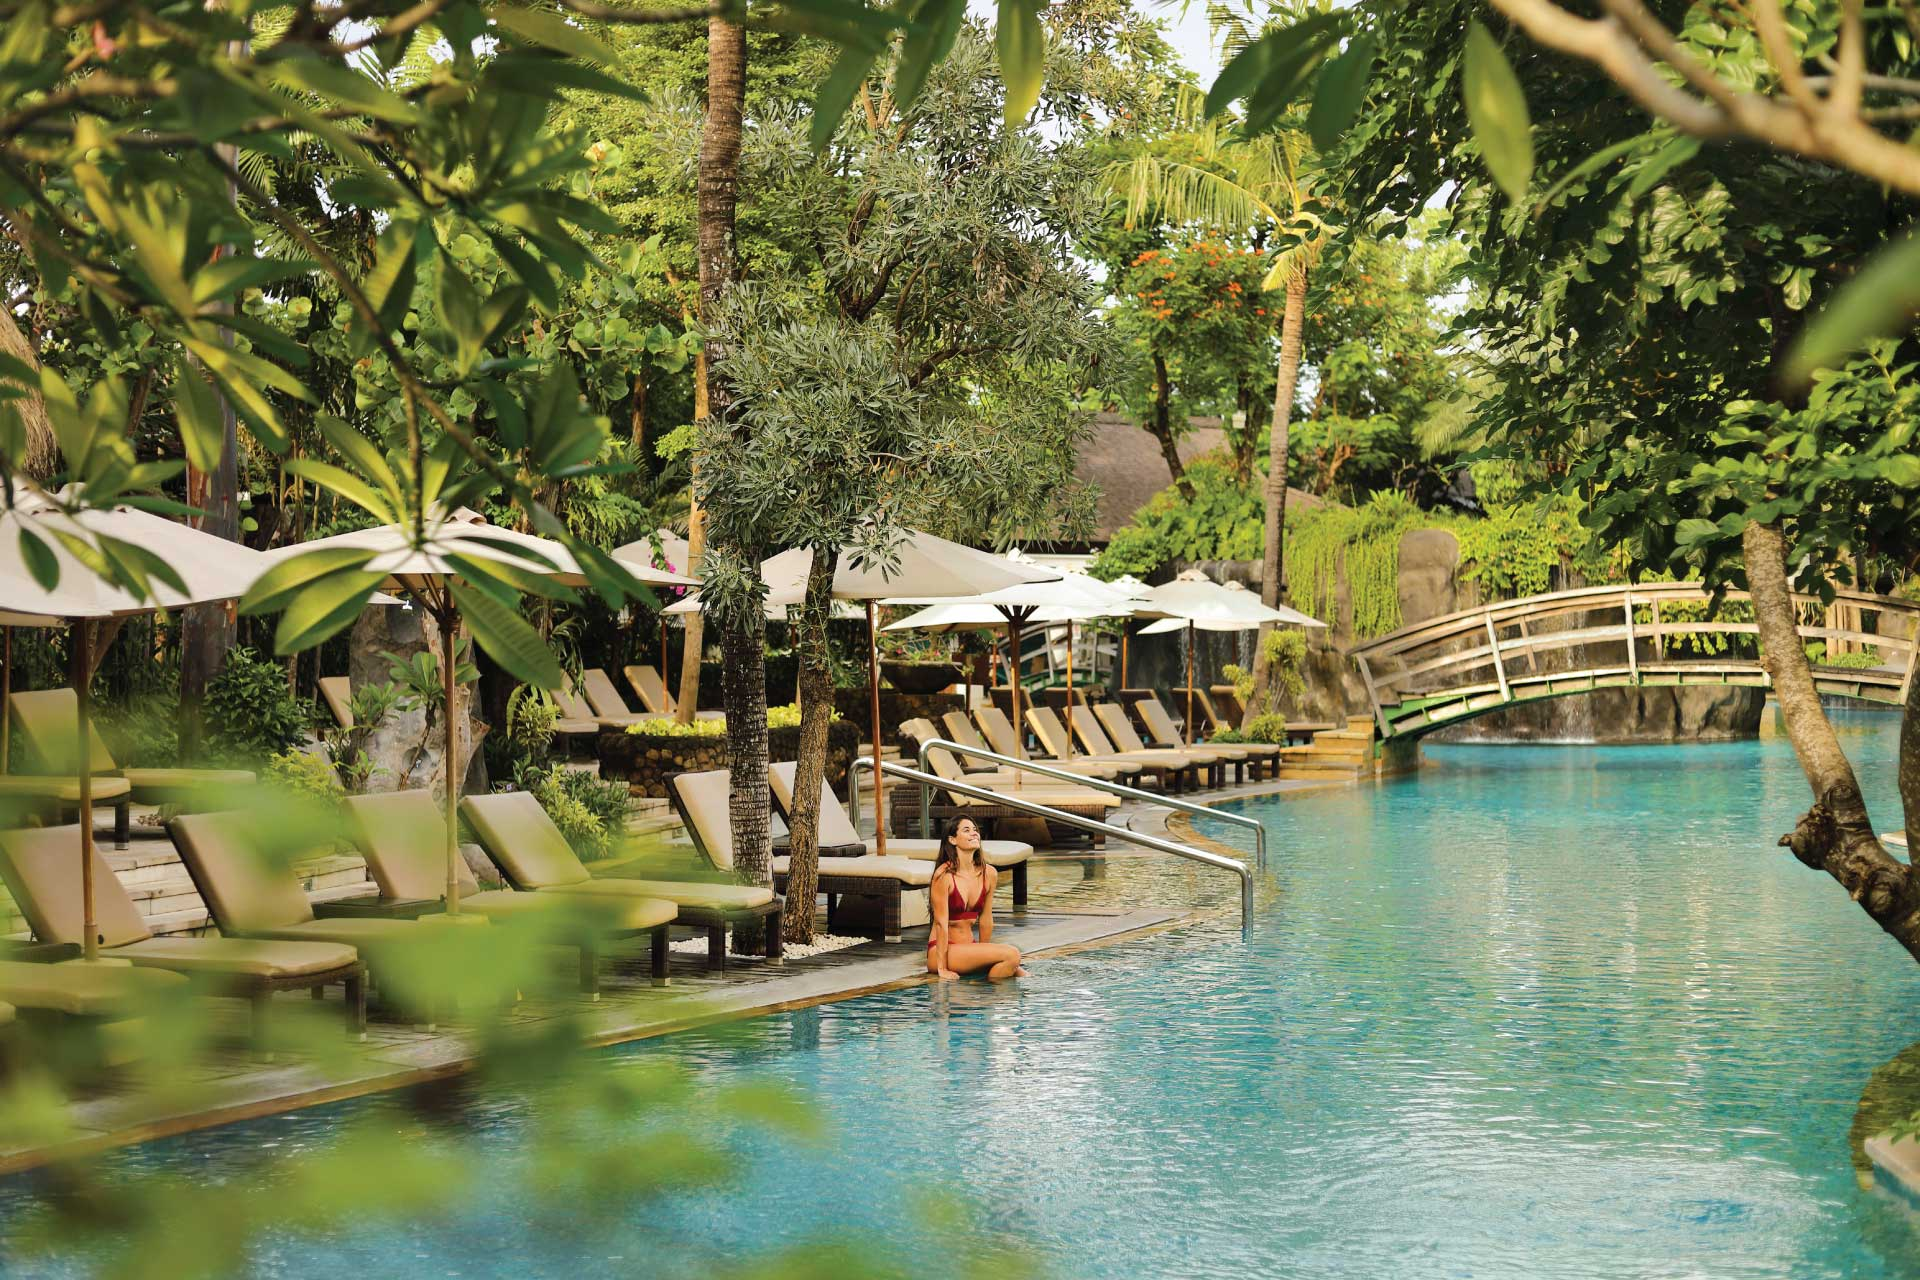 Lagoon Swimming Pool Padma Resort Legian